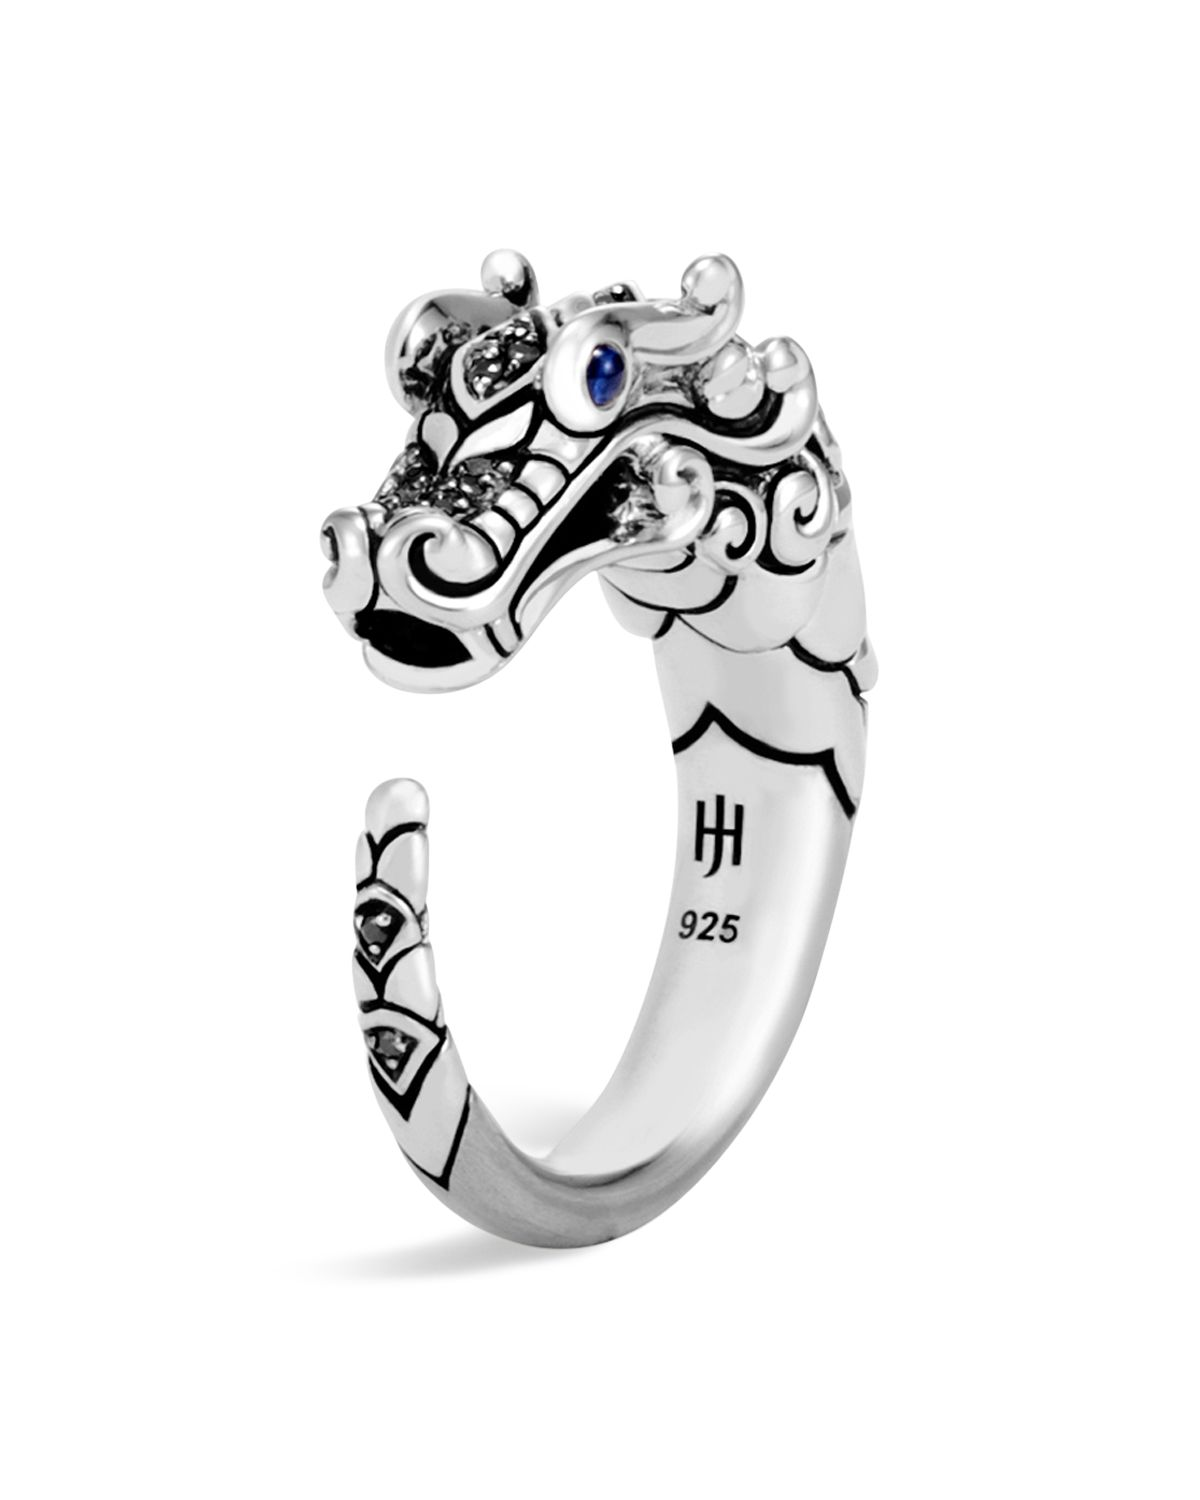 John Hardy Naga Ring With Black Sapphire, Black Spinel